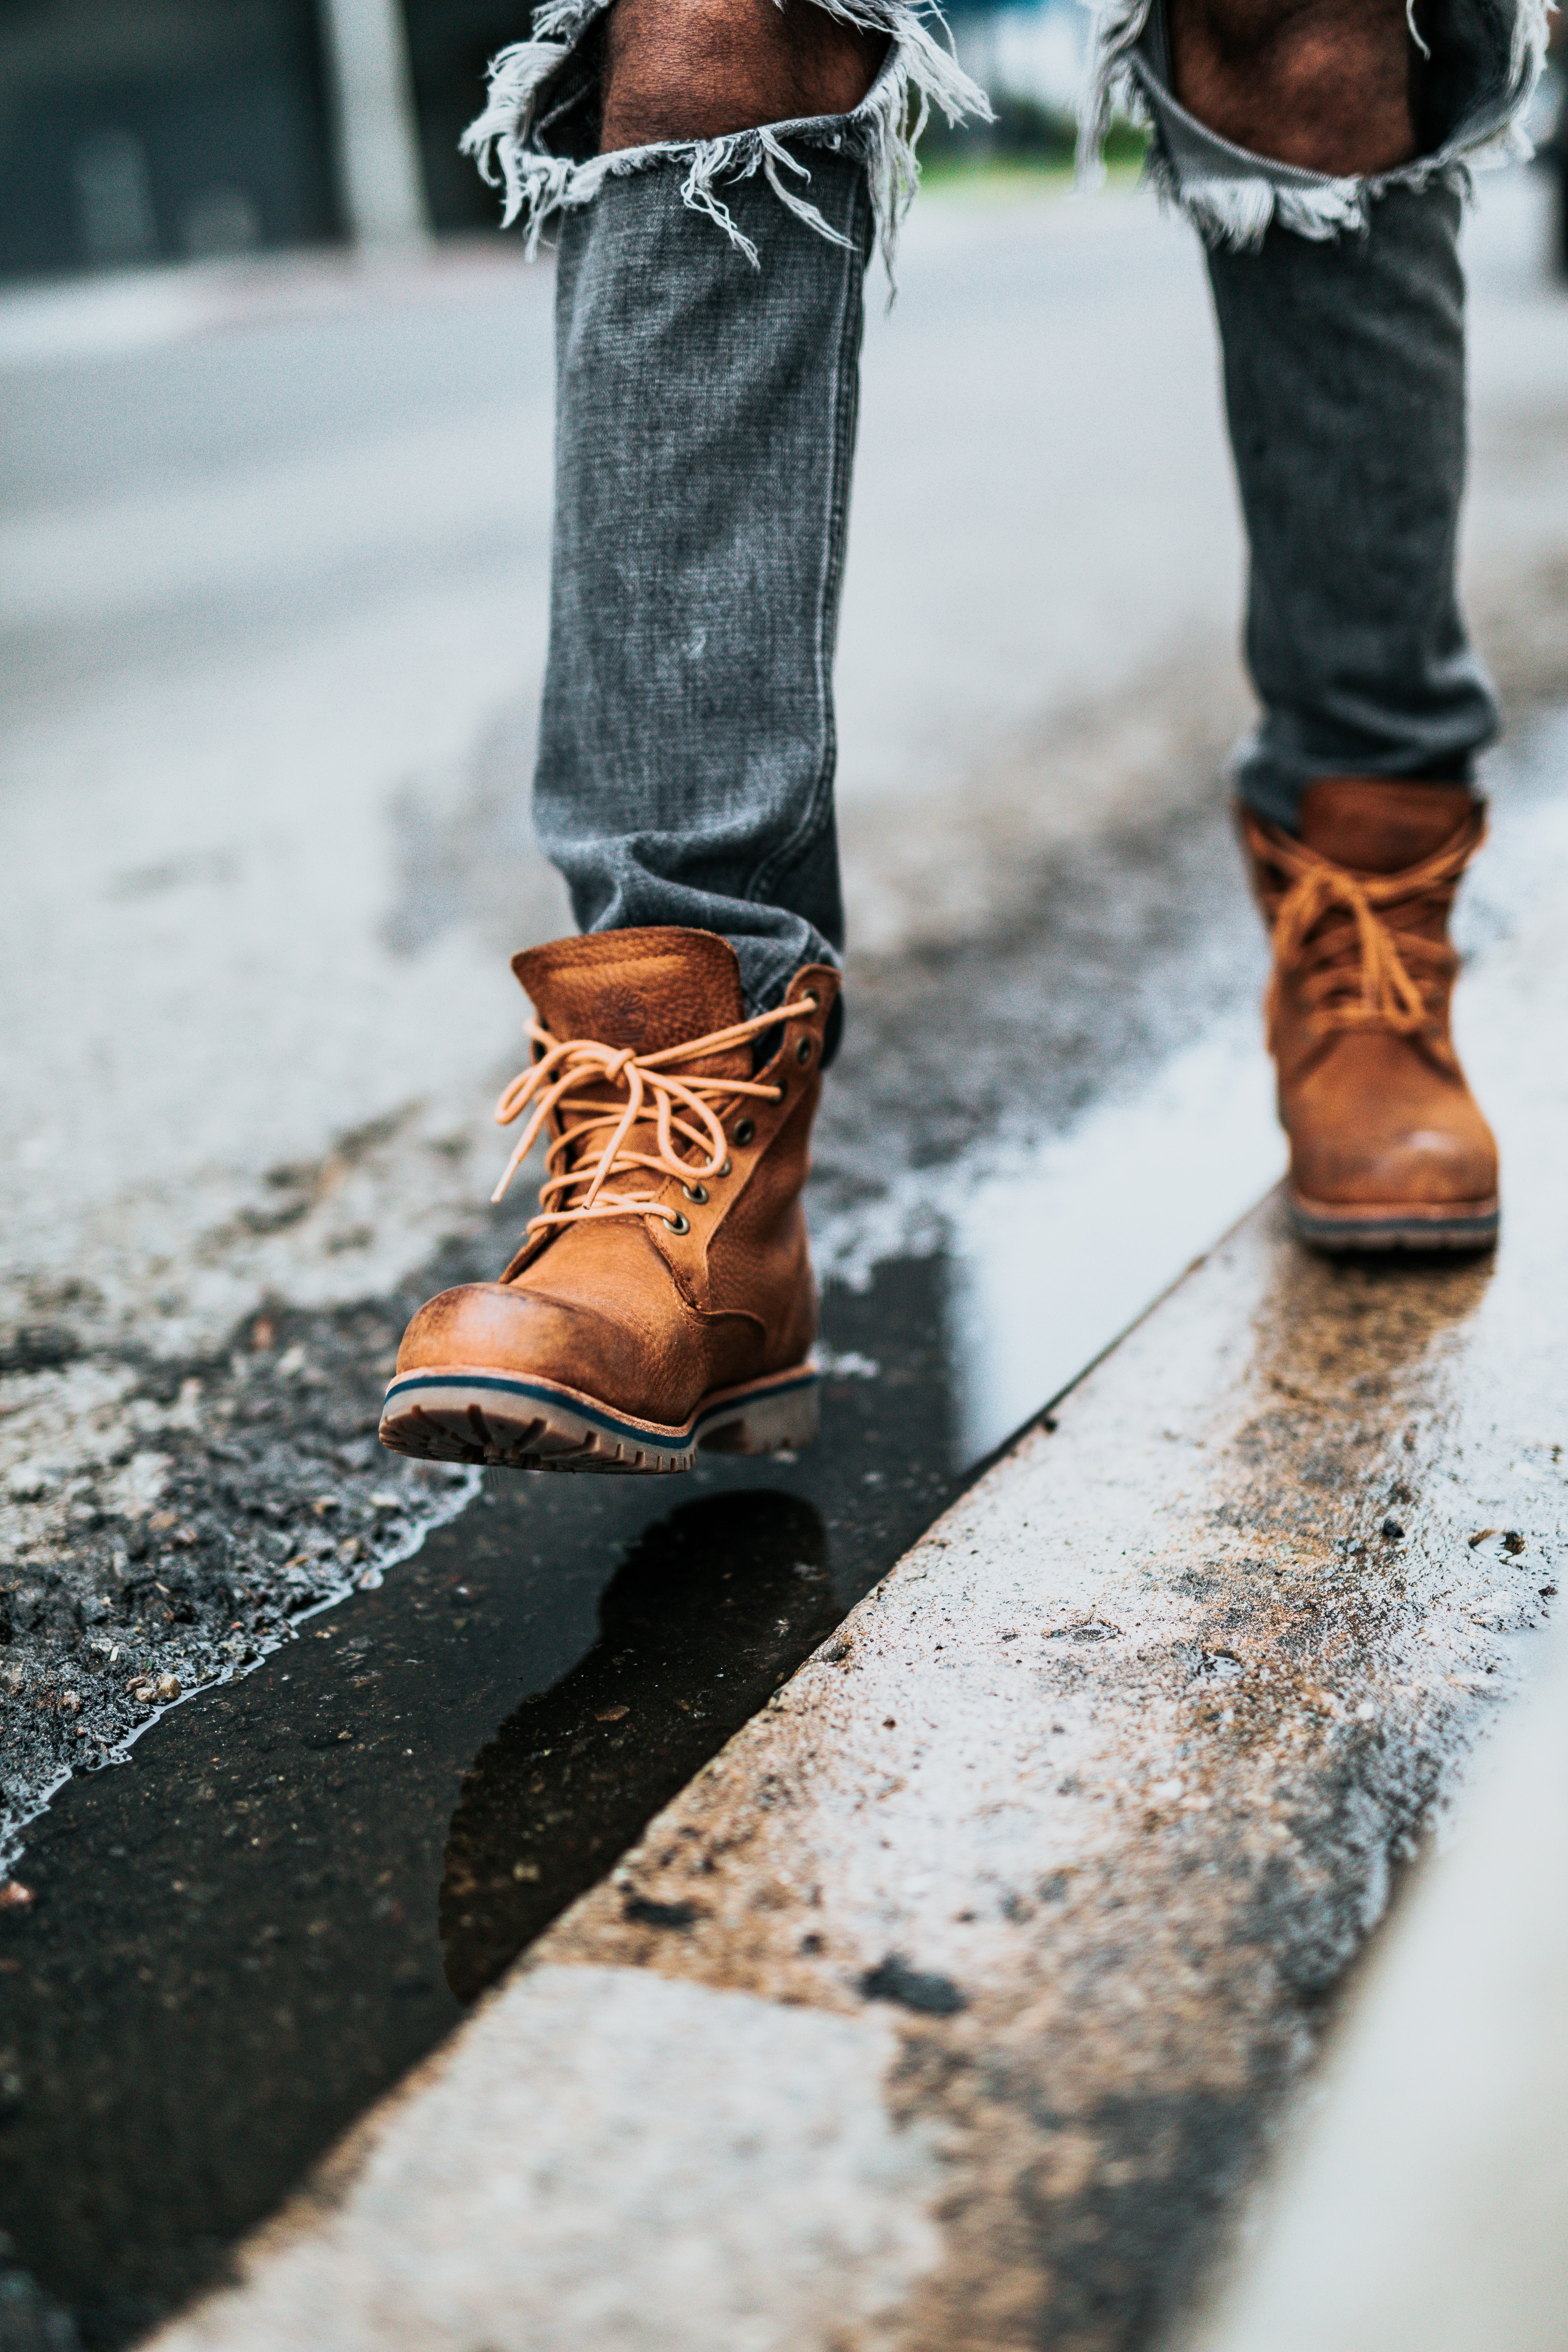 person in gray jeans and brown leather boots walking on road